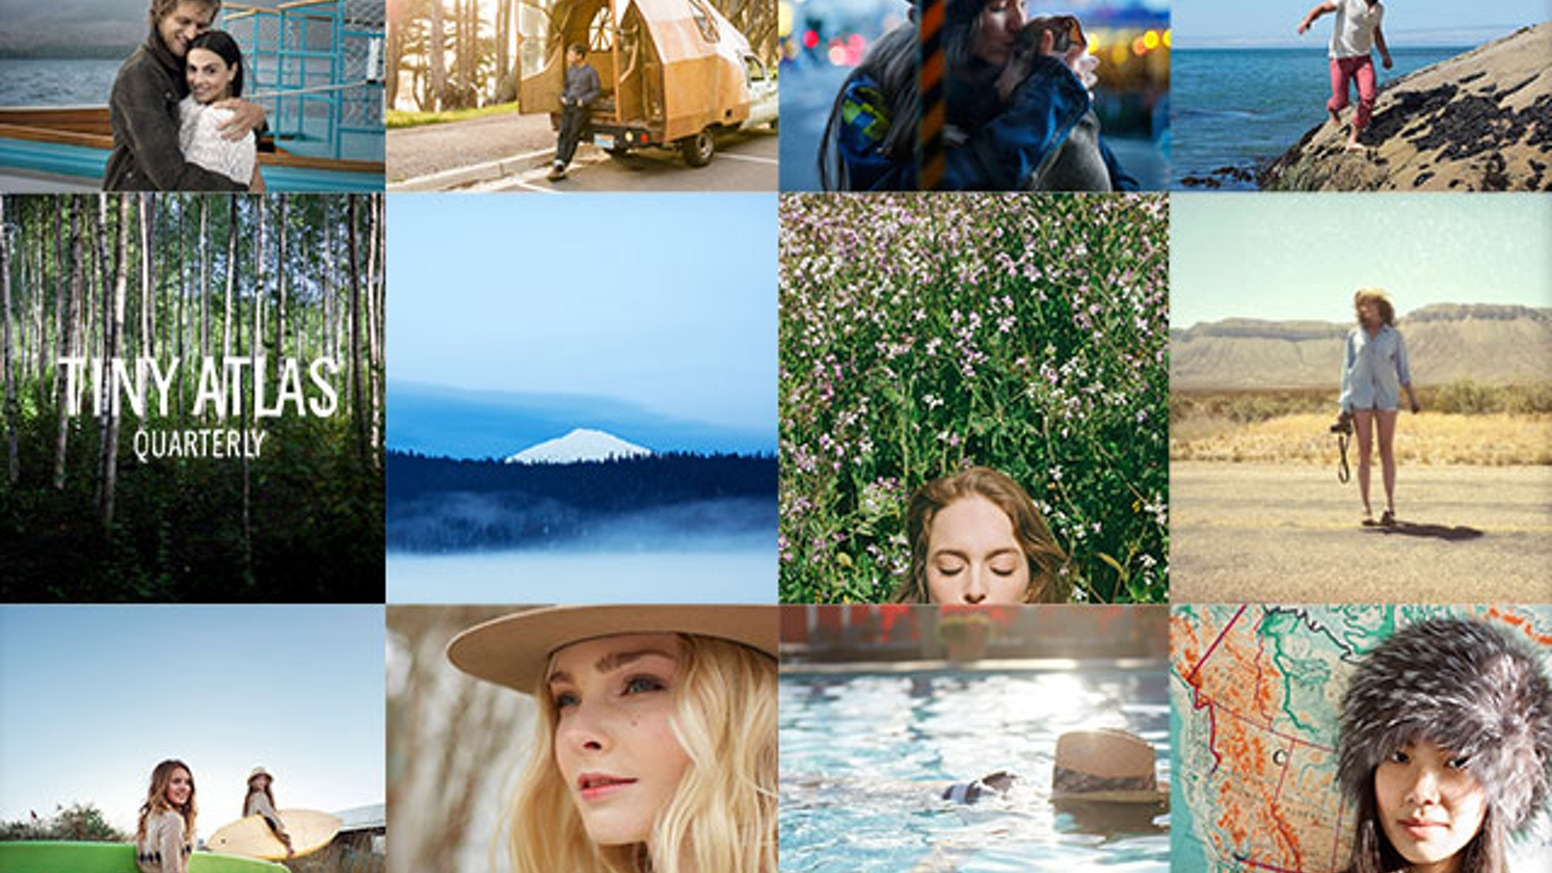 Tiny Atlas Quarterly magazine features travel in a fresh, immersive and personal way. Fund our next edition on-line and in print today!